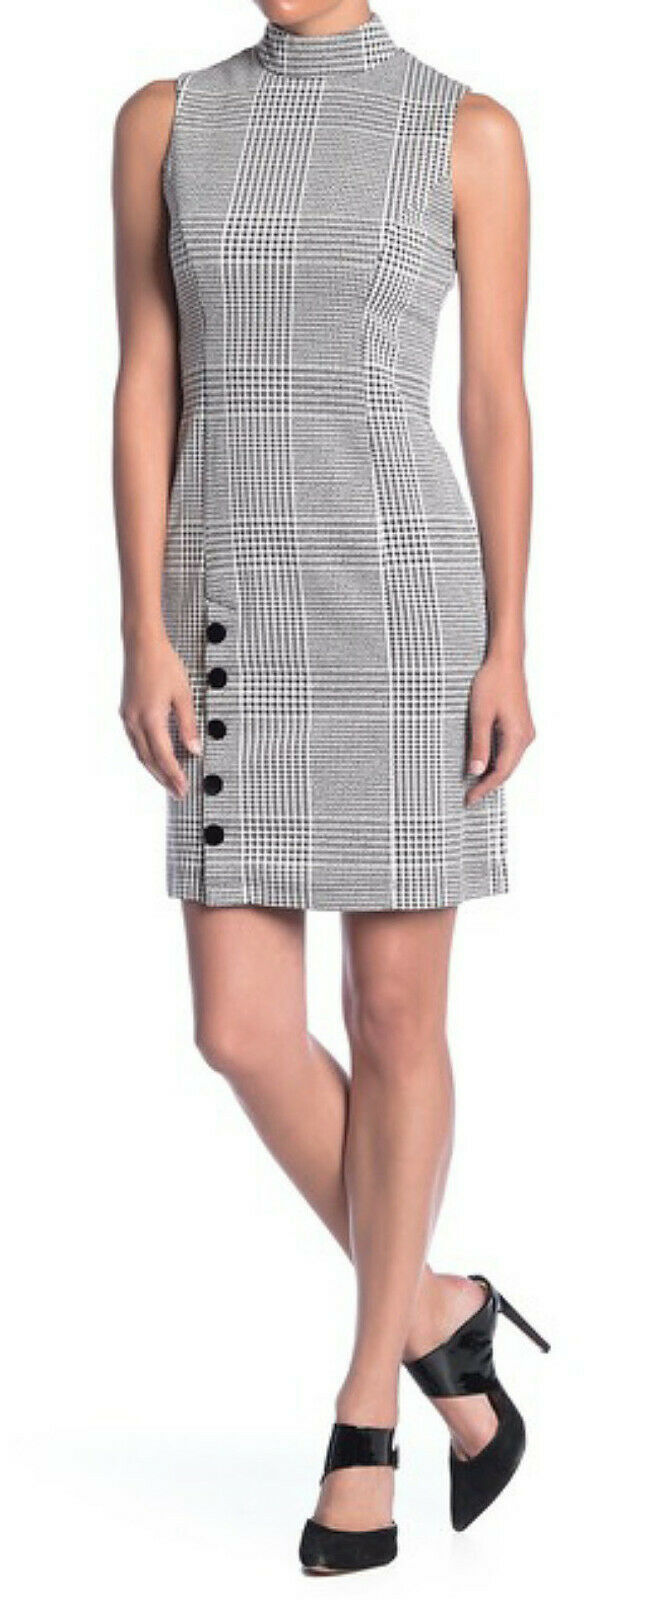 Primary image for Sharagano High Neck Plaid Dress Petite 10 Black White Plaid P10 Faux Button Hem